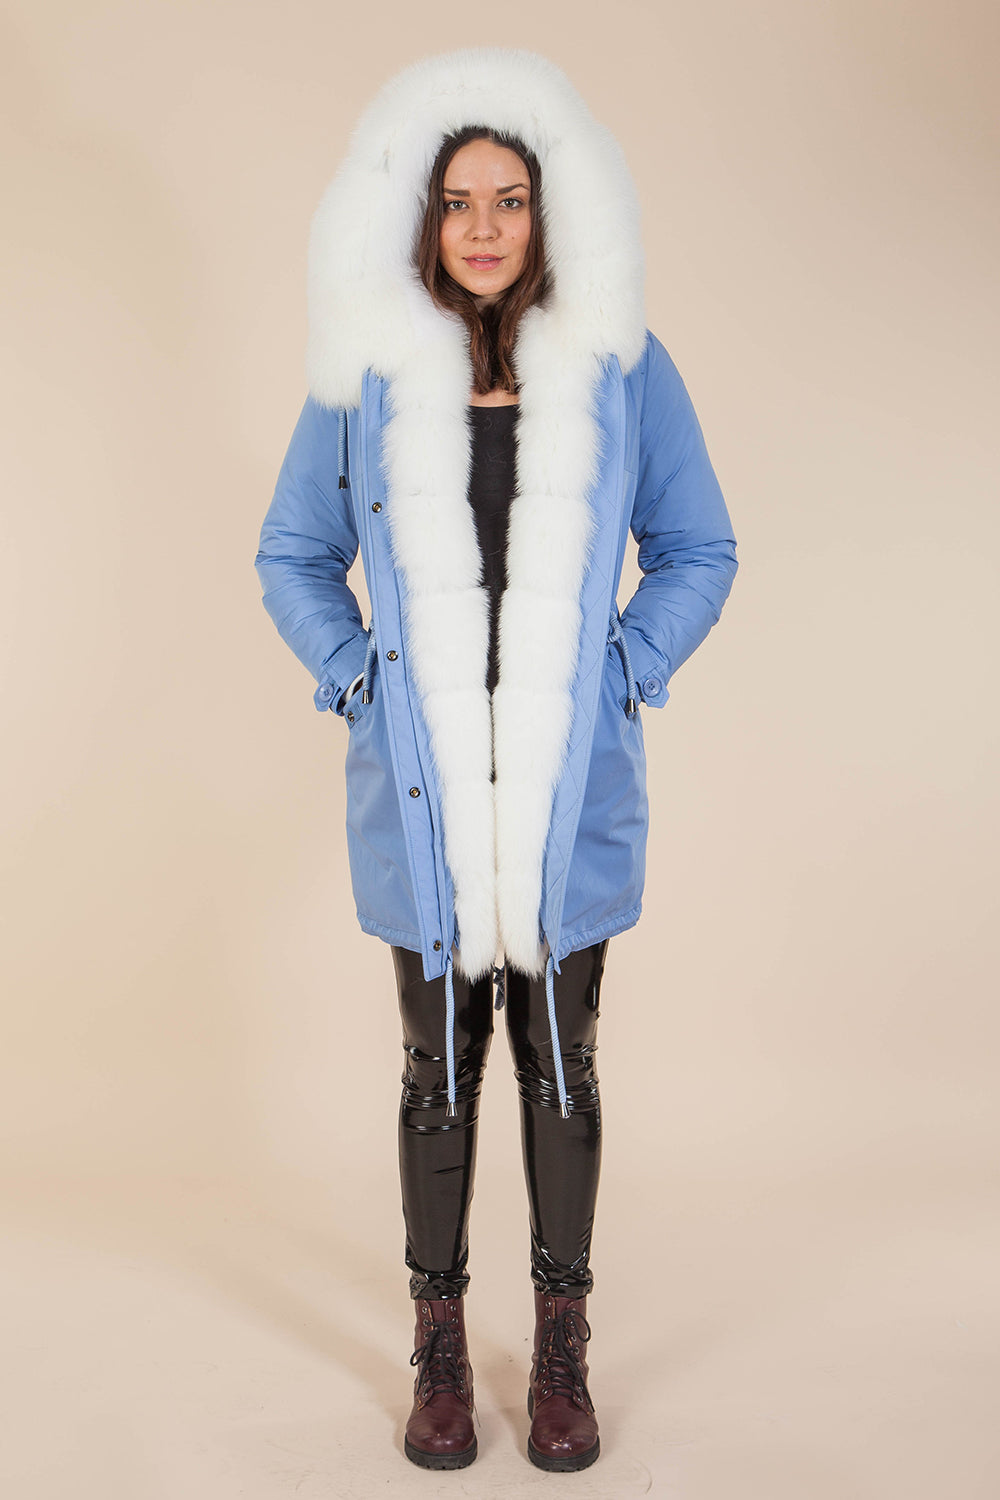 Blue Midi Parka Main Fabric is Waterproof / Raincoat Fabric With Blue Shadow Fox